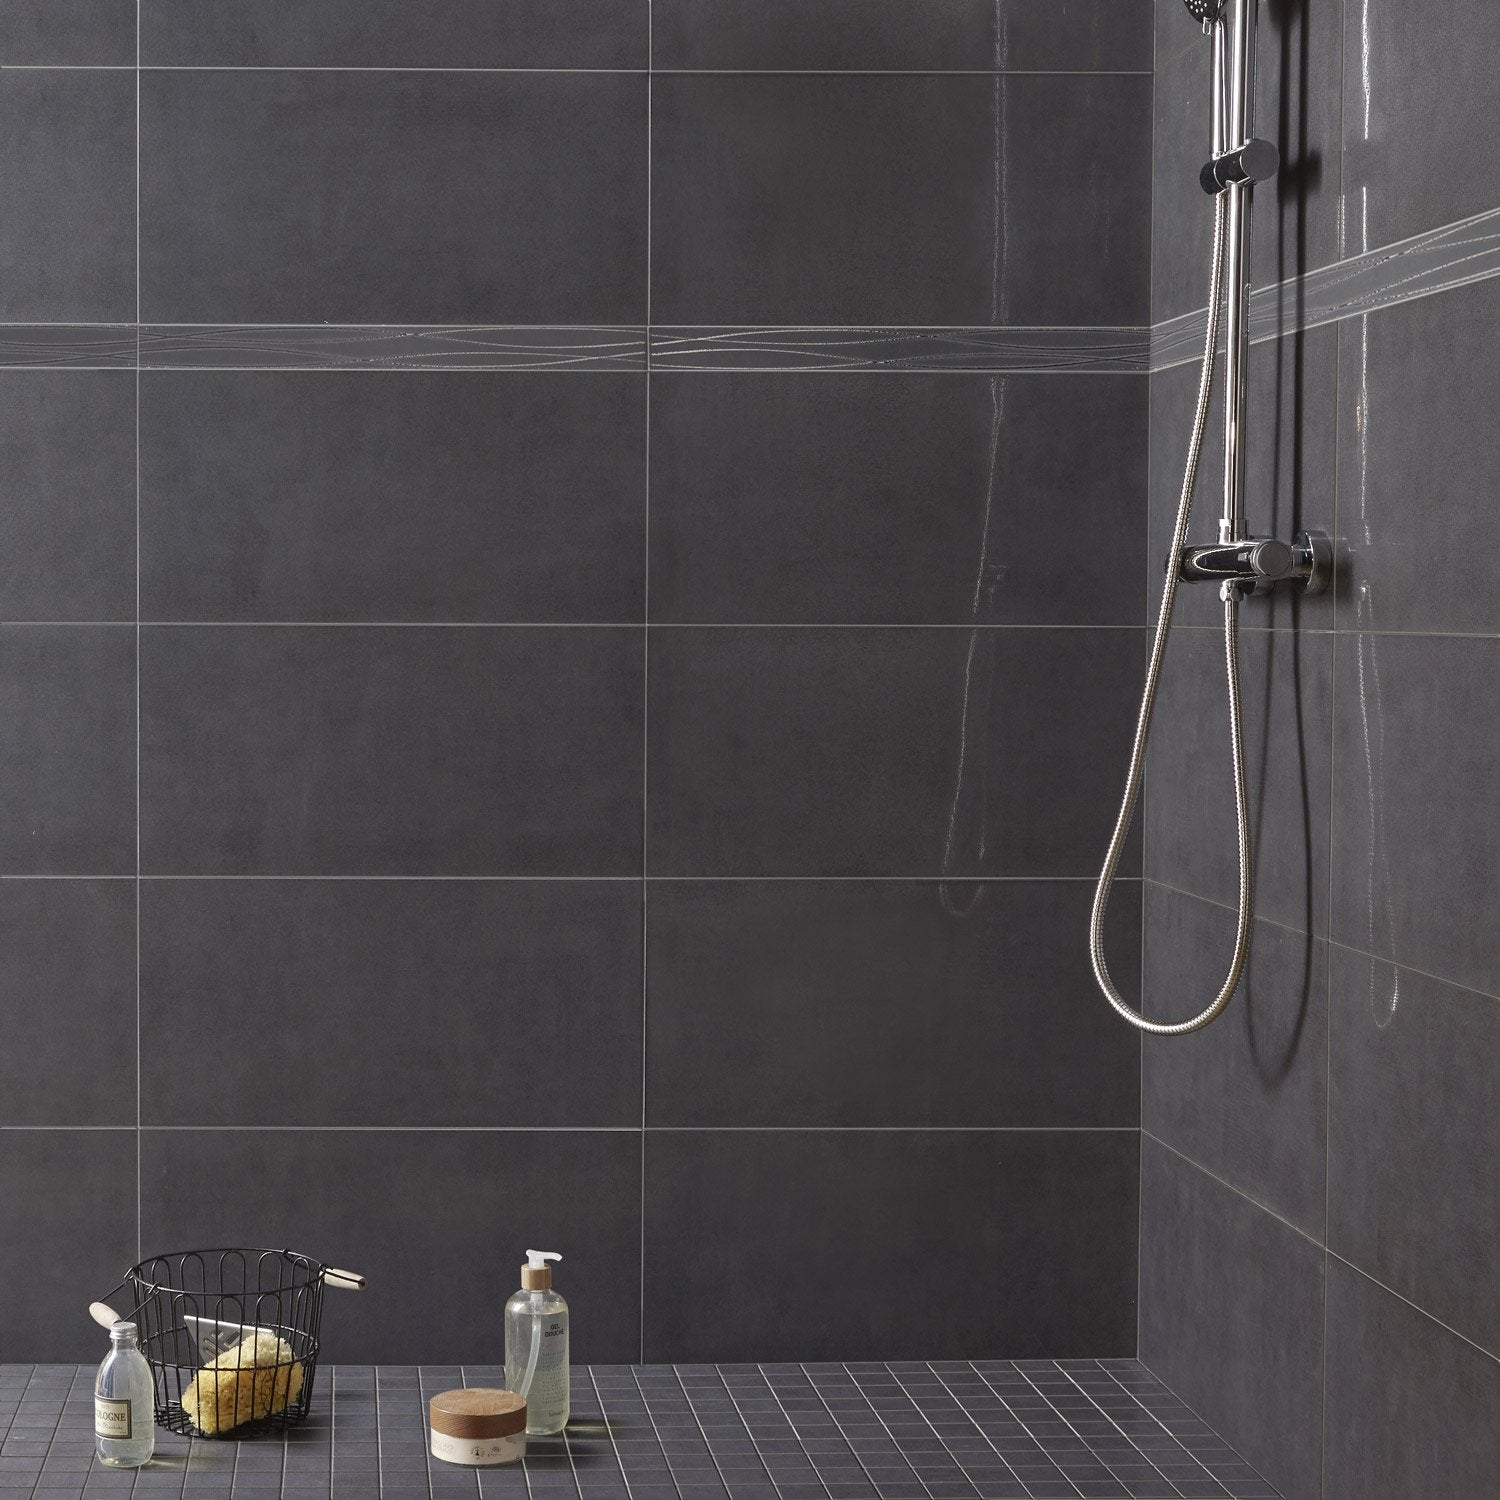 Carrelage sol et mur anthracite gloss x cm for Carreau salle de bain gris